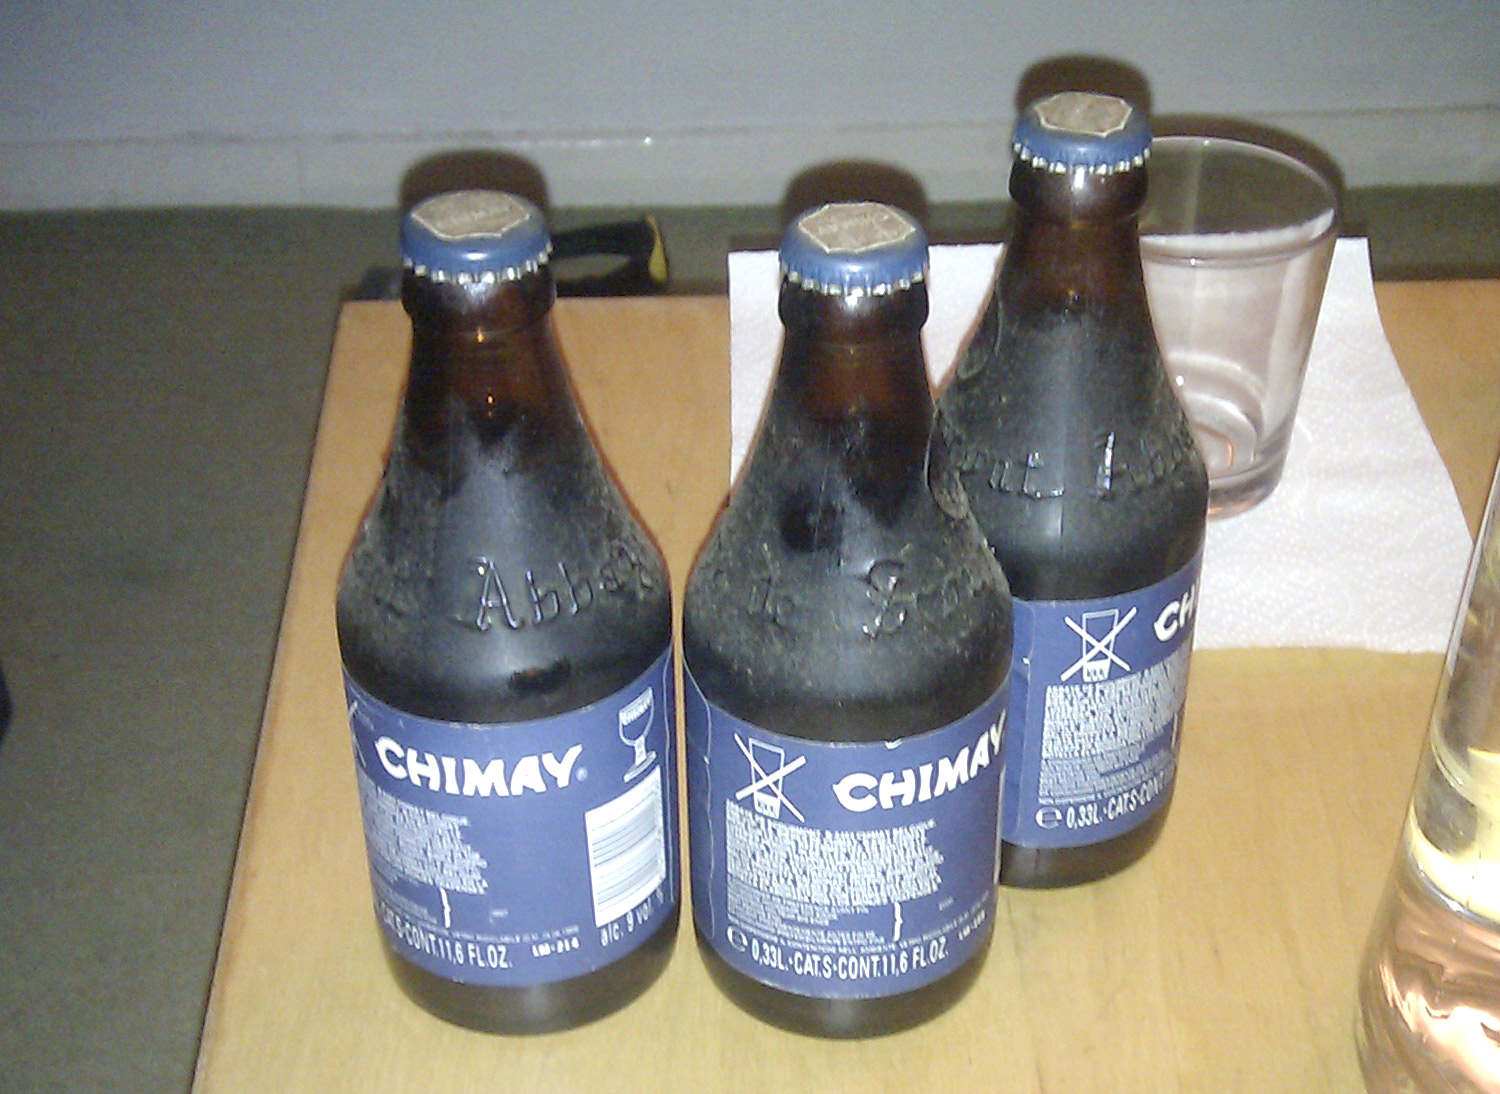 three little birds (from Chimay)